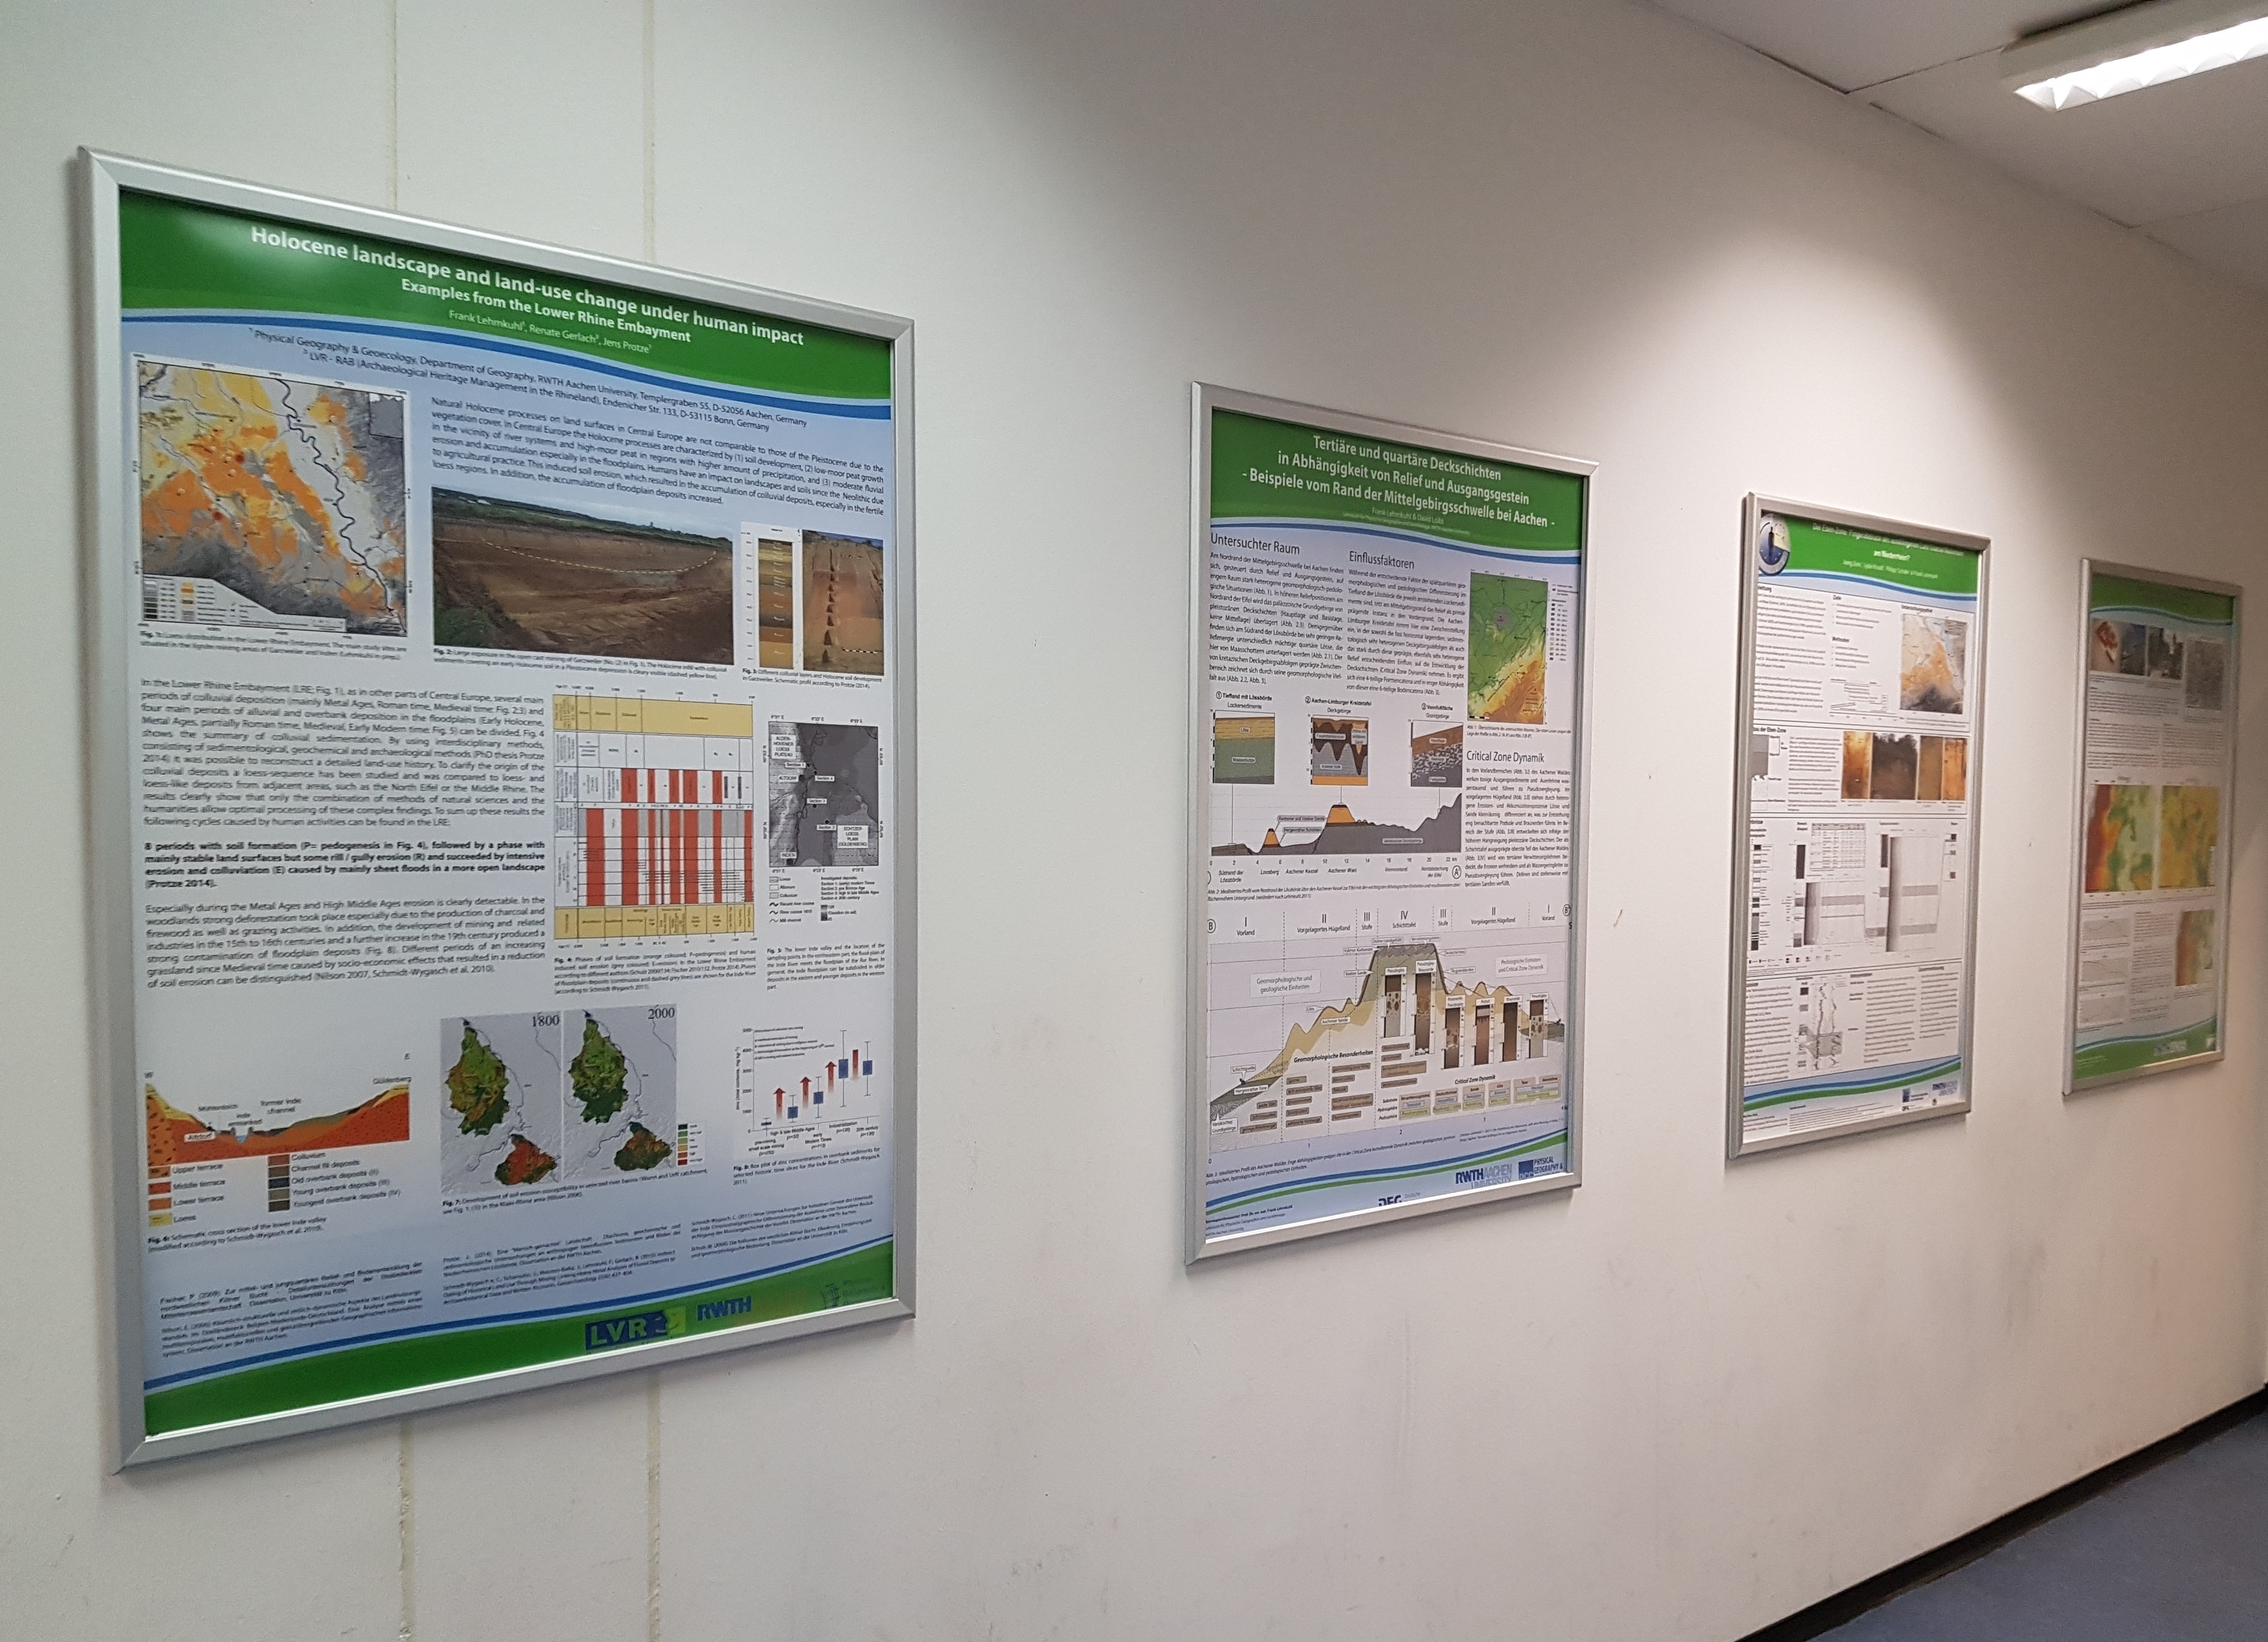 Posters on research projects